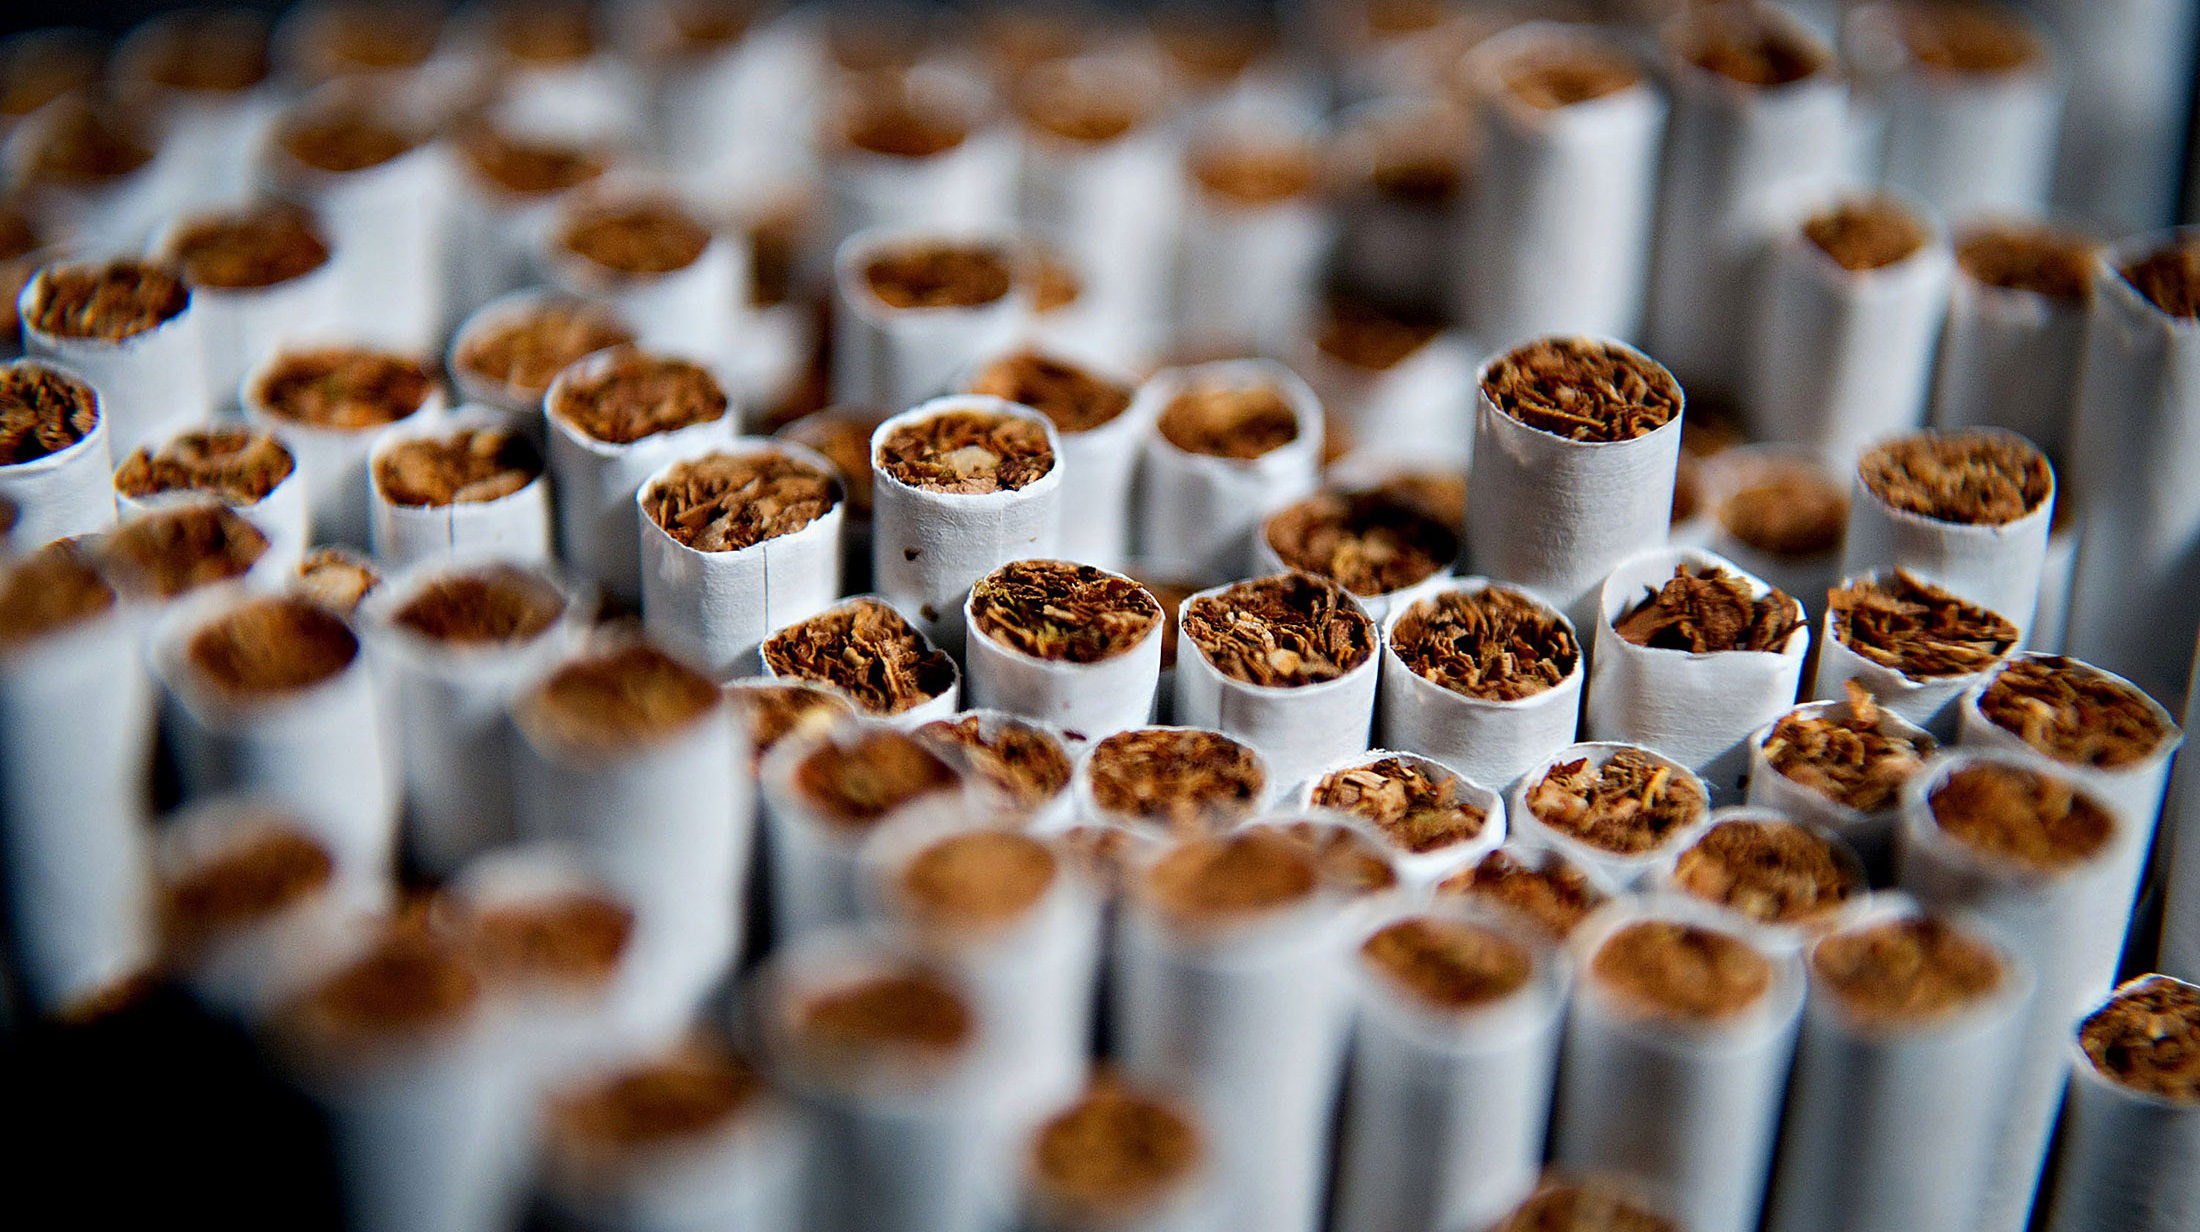 PIL gets filed against govt's involvement in tobacco industry